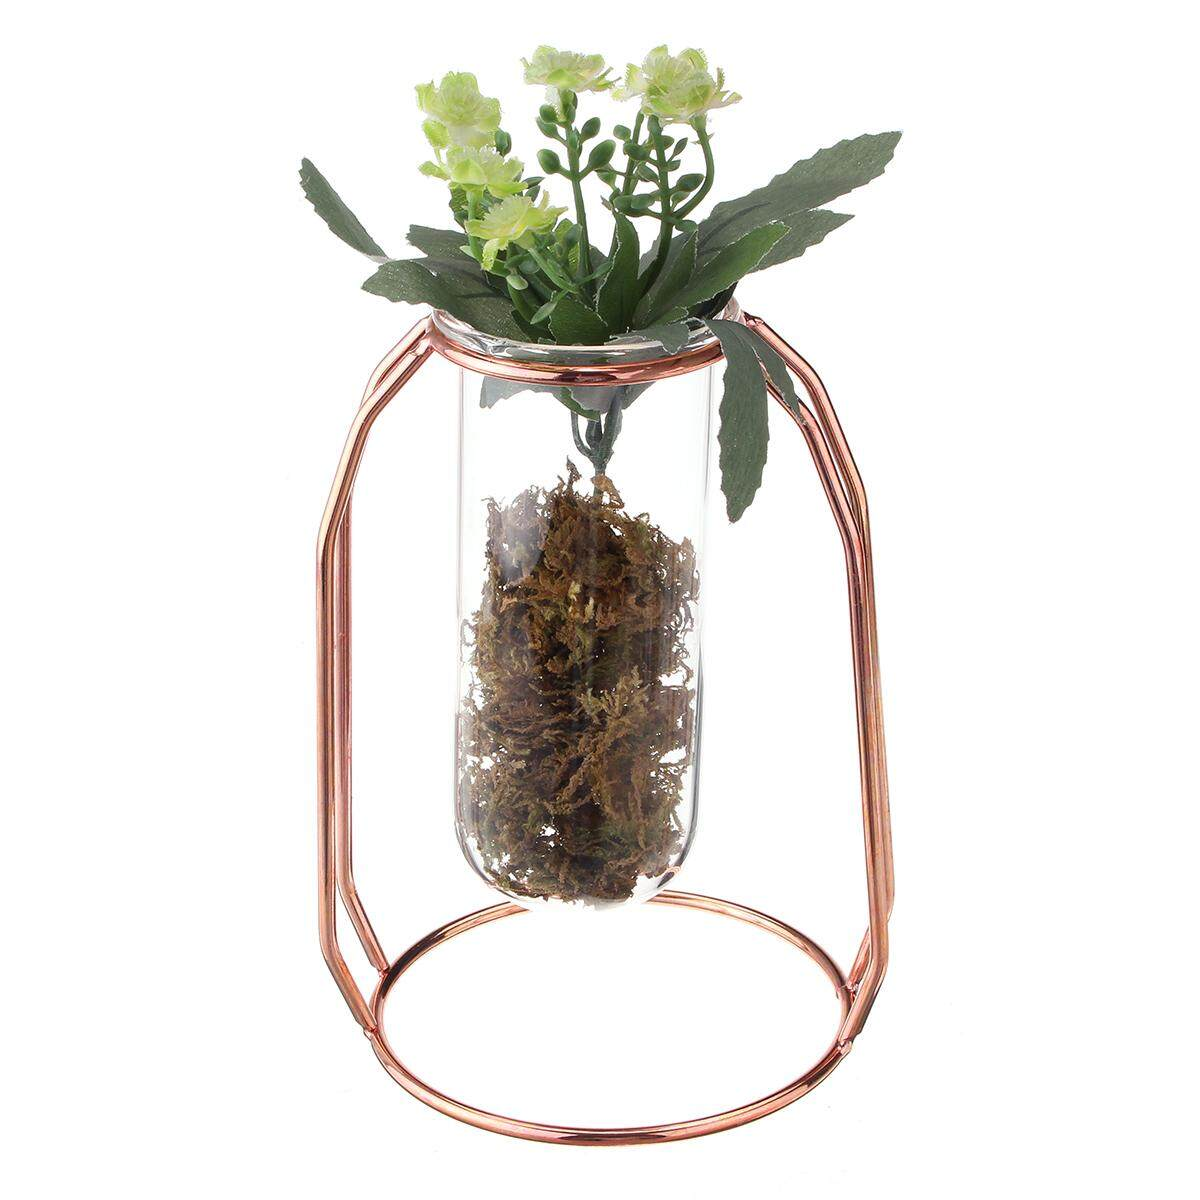 Hanging Glass Water Tube Vase Plant Pot Metal Stand Flower Bottle Container Deco Small